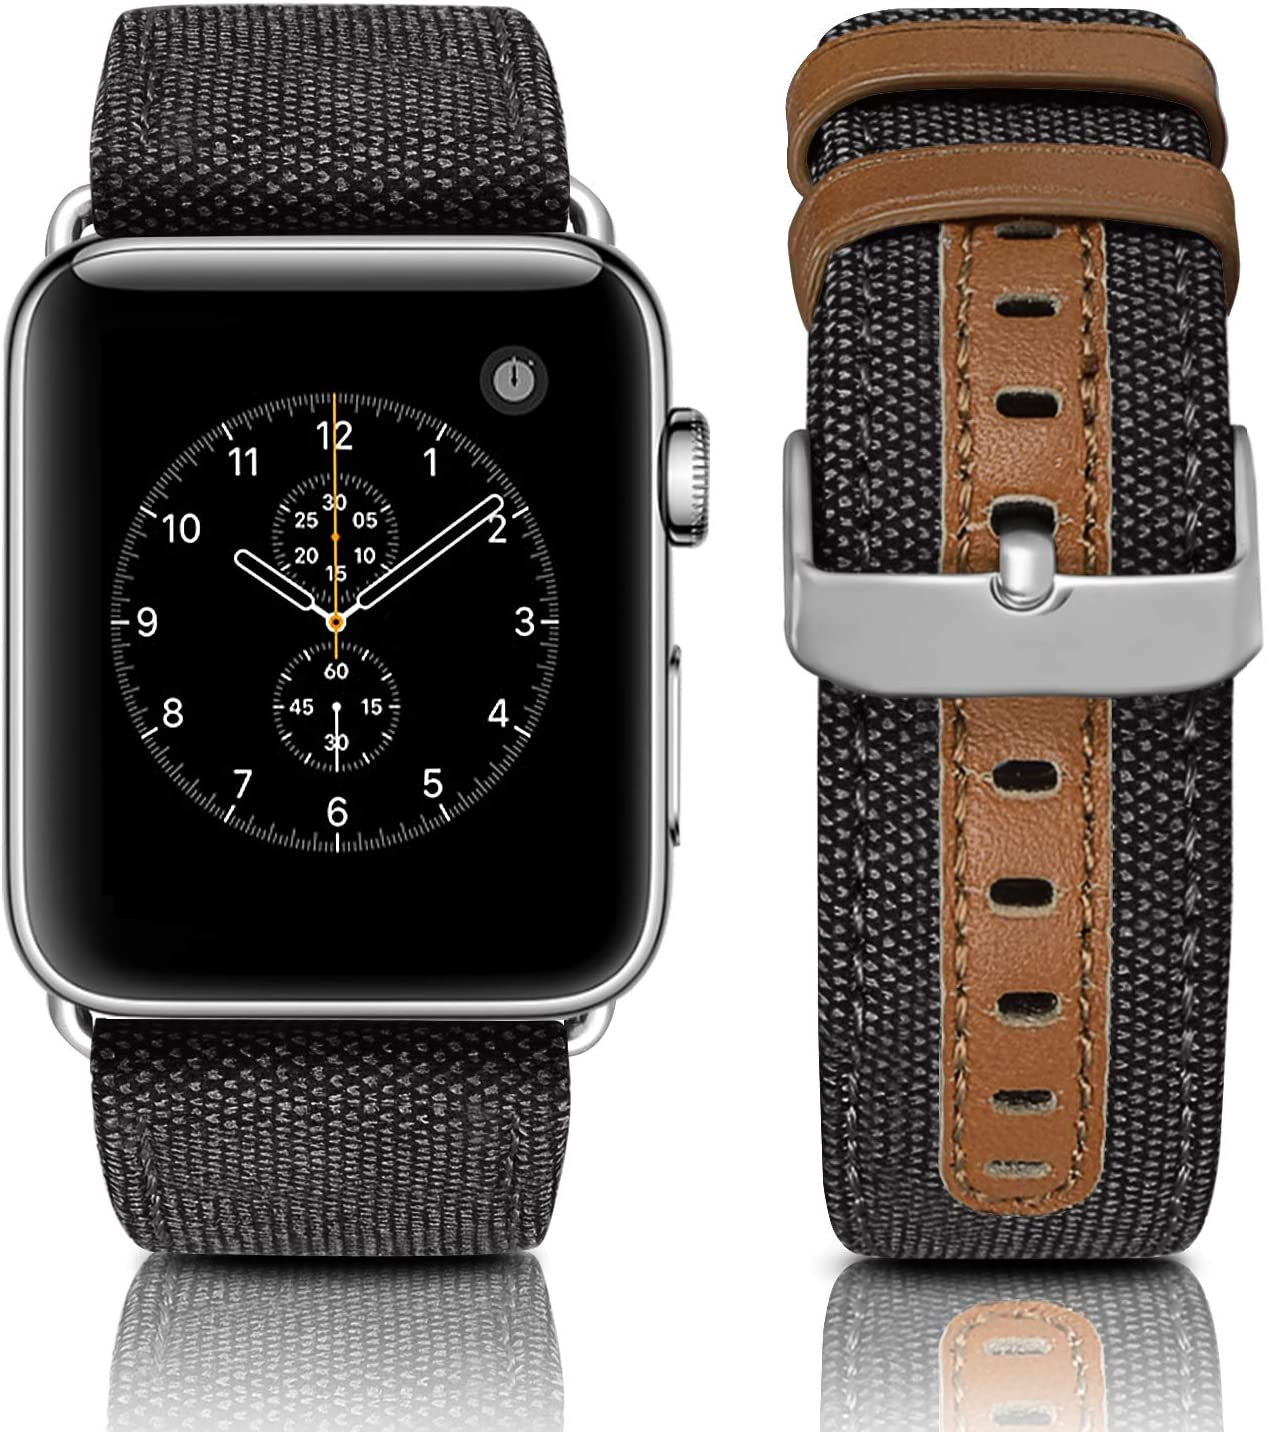 Jobese Compatible with Apple Watch Bands for Men Women 38mm/40mm 42mm/44mm, Canvas Fabric Genuine Leather Replacement Wristband Compatible with Apple Watch Series 4 5 6 SE 3 2 1